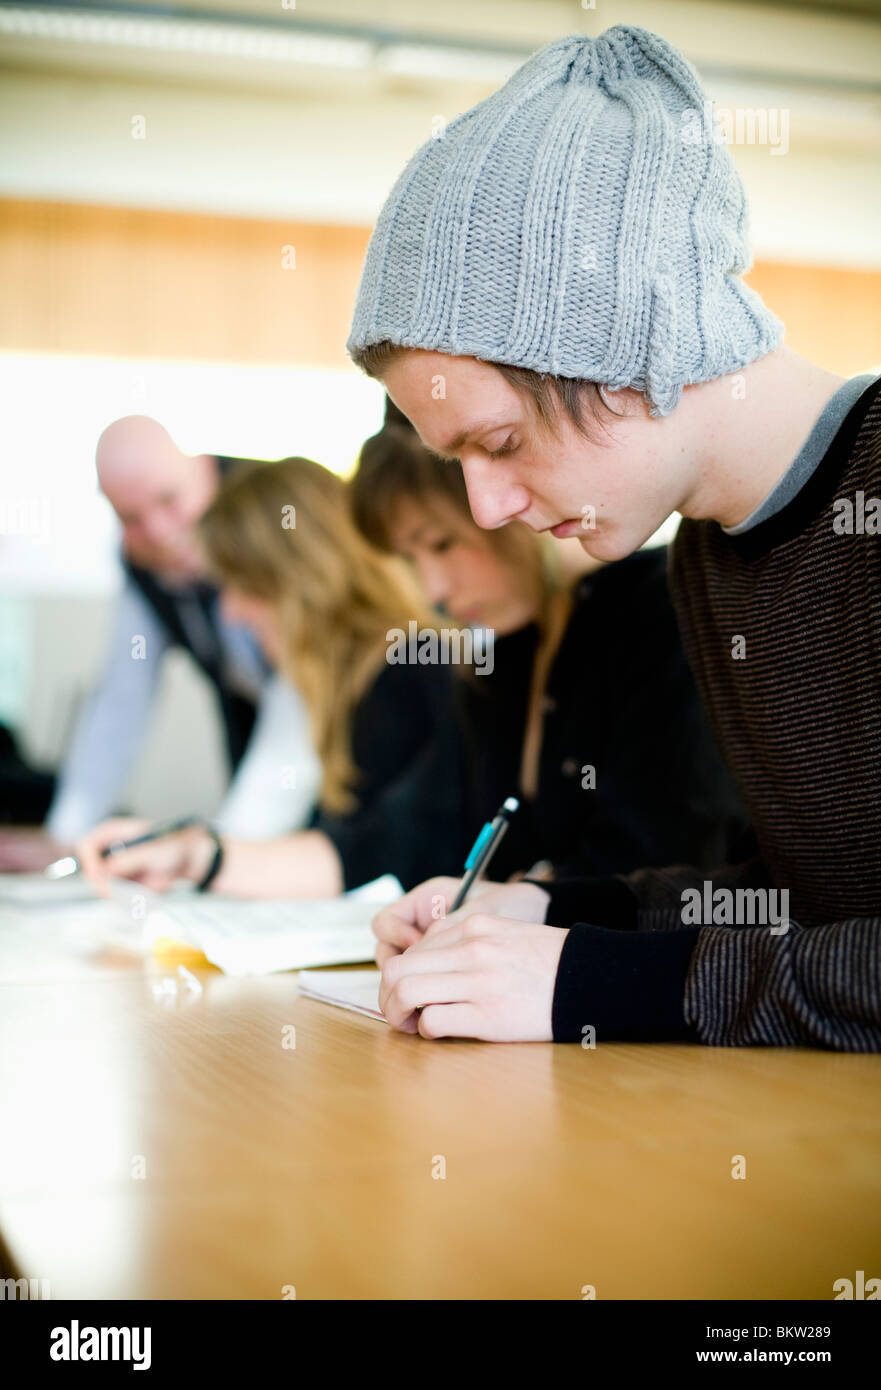 Student with hat indoors - Stock Image